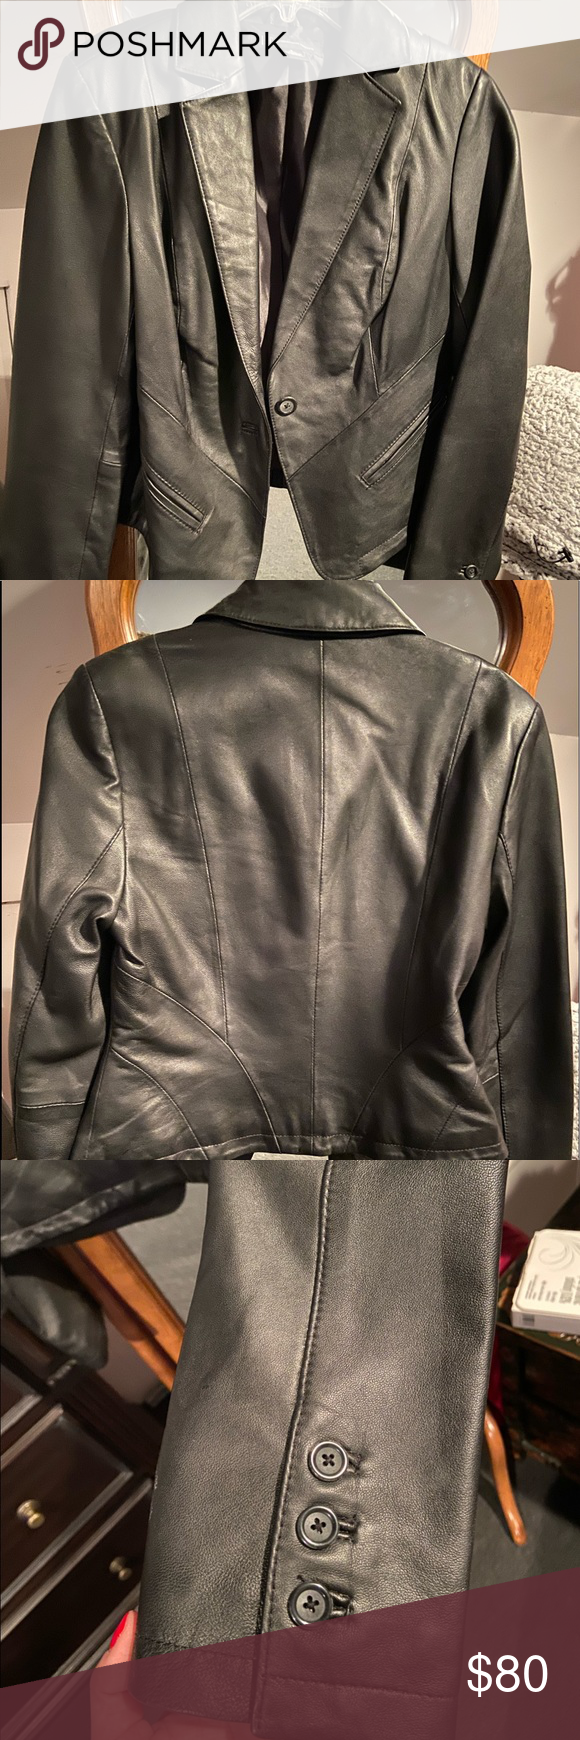 Inc International Concept Leather Jacket Small Leather Jacket Jackets Jackets For Women [ 1740 x 580 Pixel ]